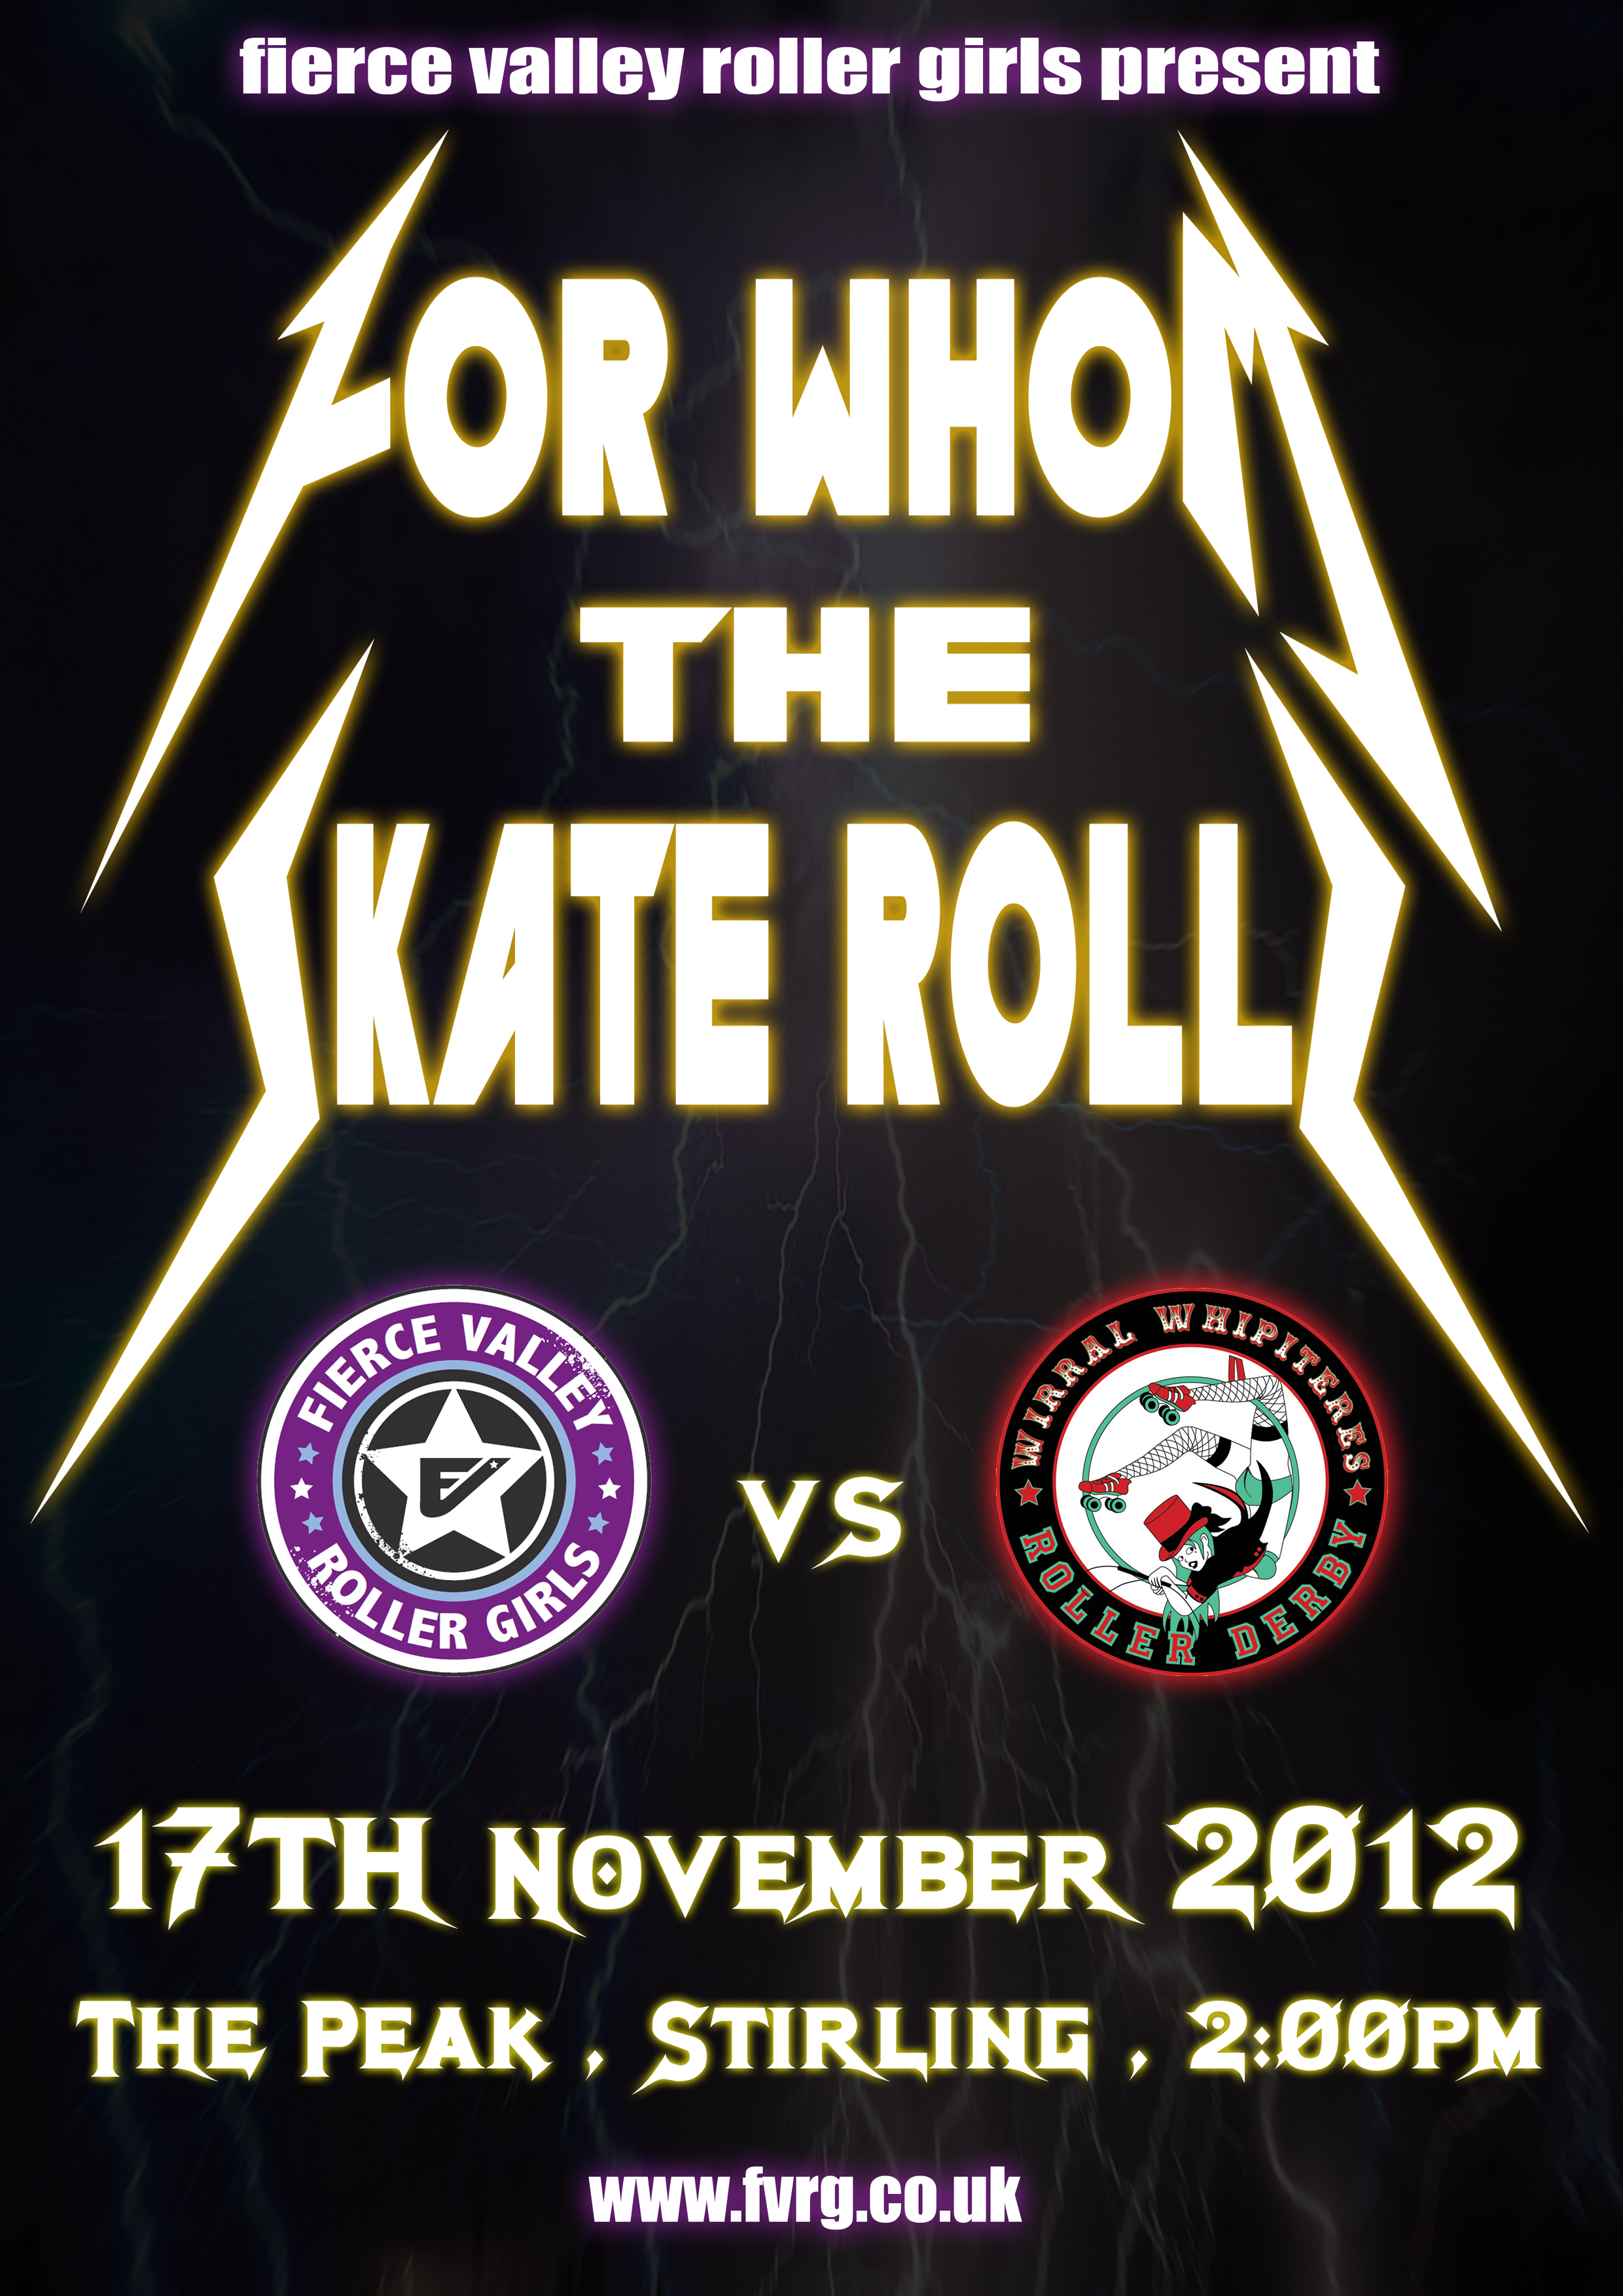 For Whom the Skate Rolls